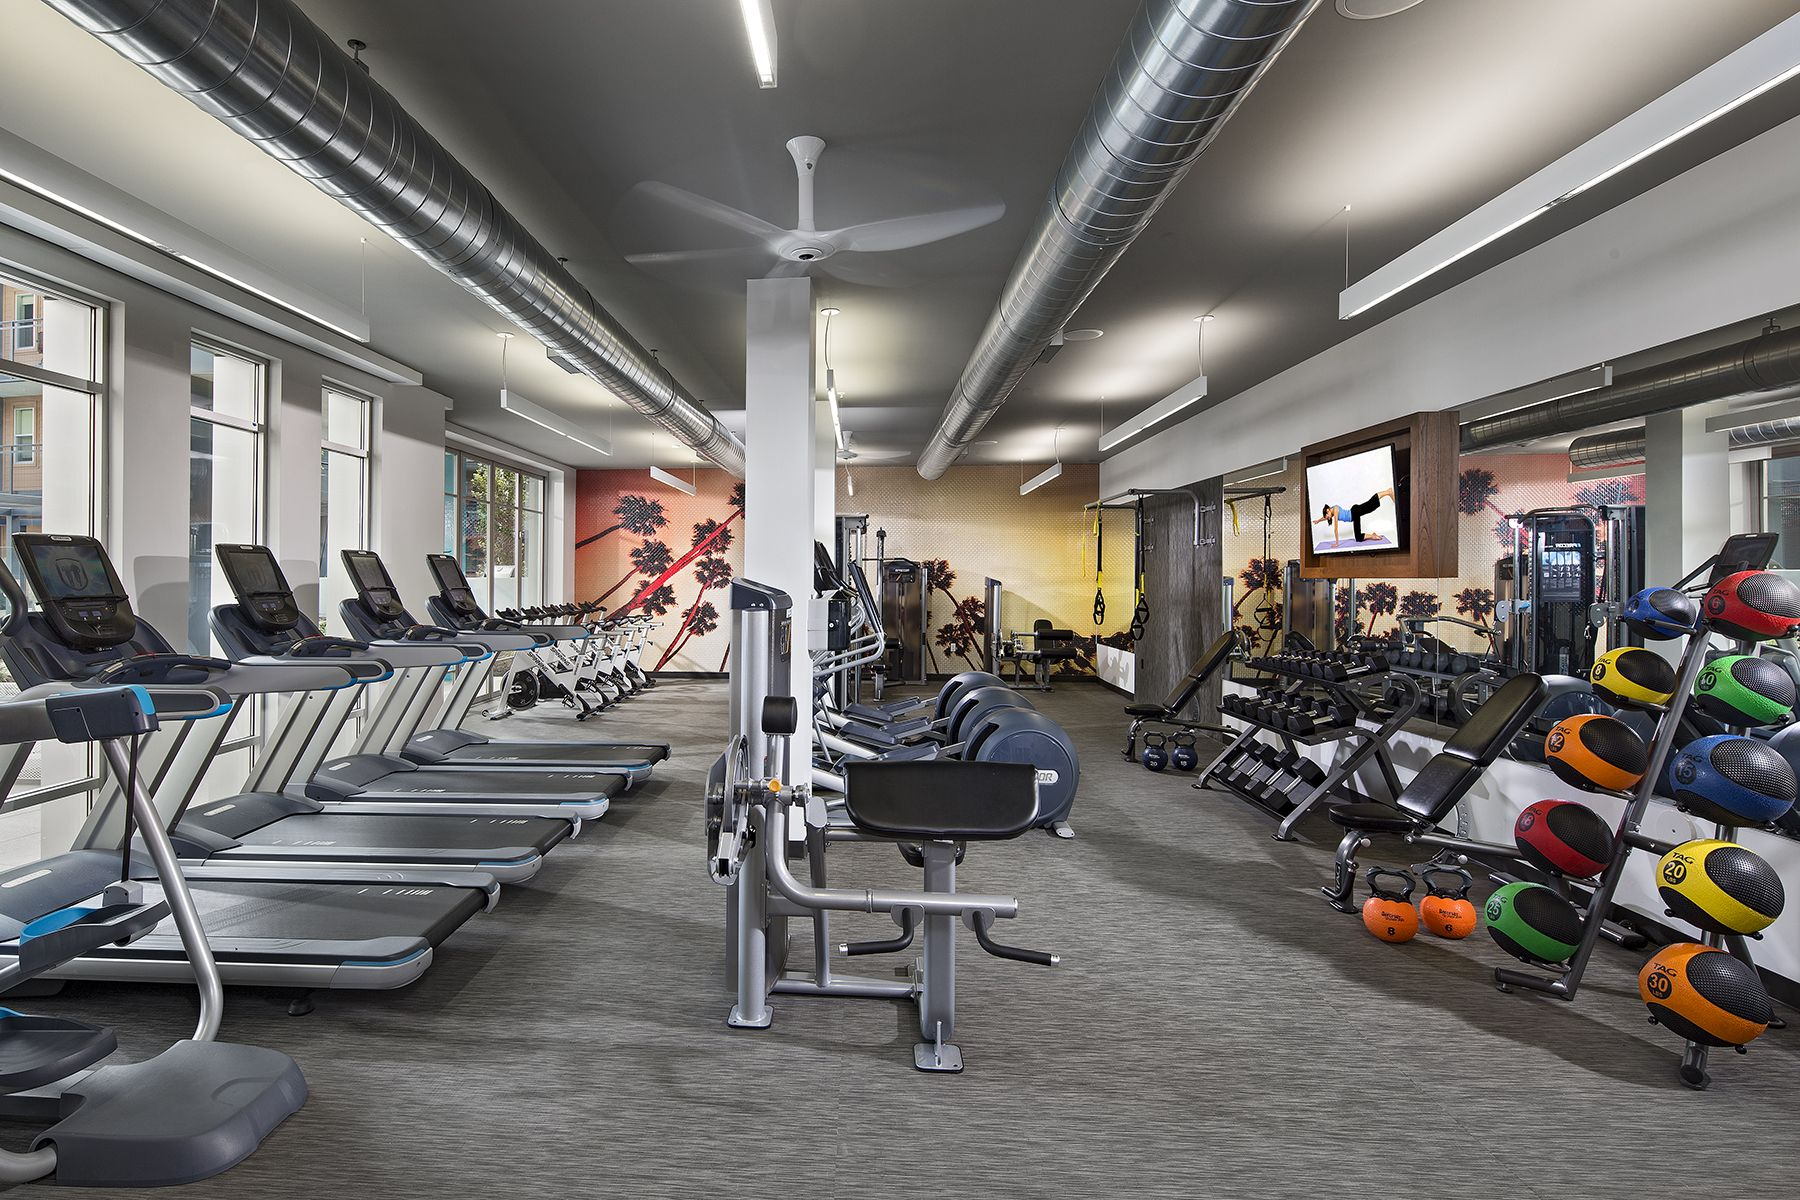 The Fitness Center Is Fully Equipped For Any Workout Routine Looking For Apartments Apartment Uptown